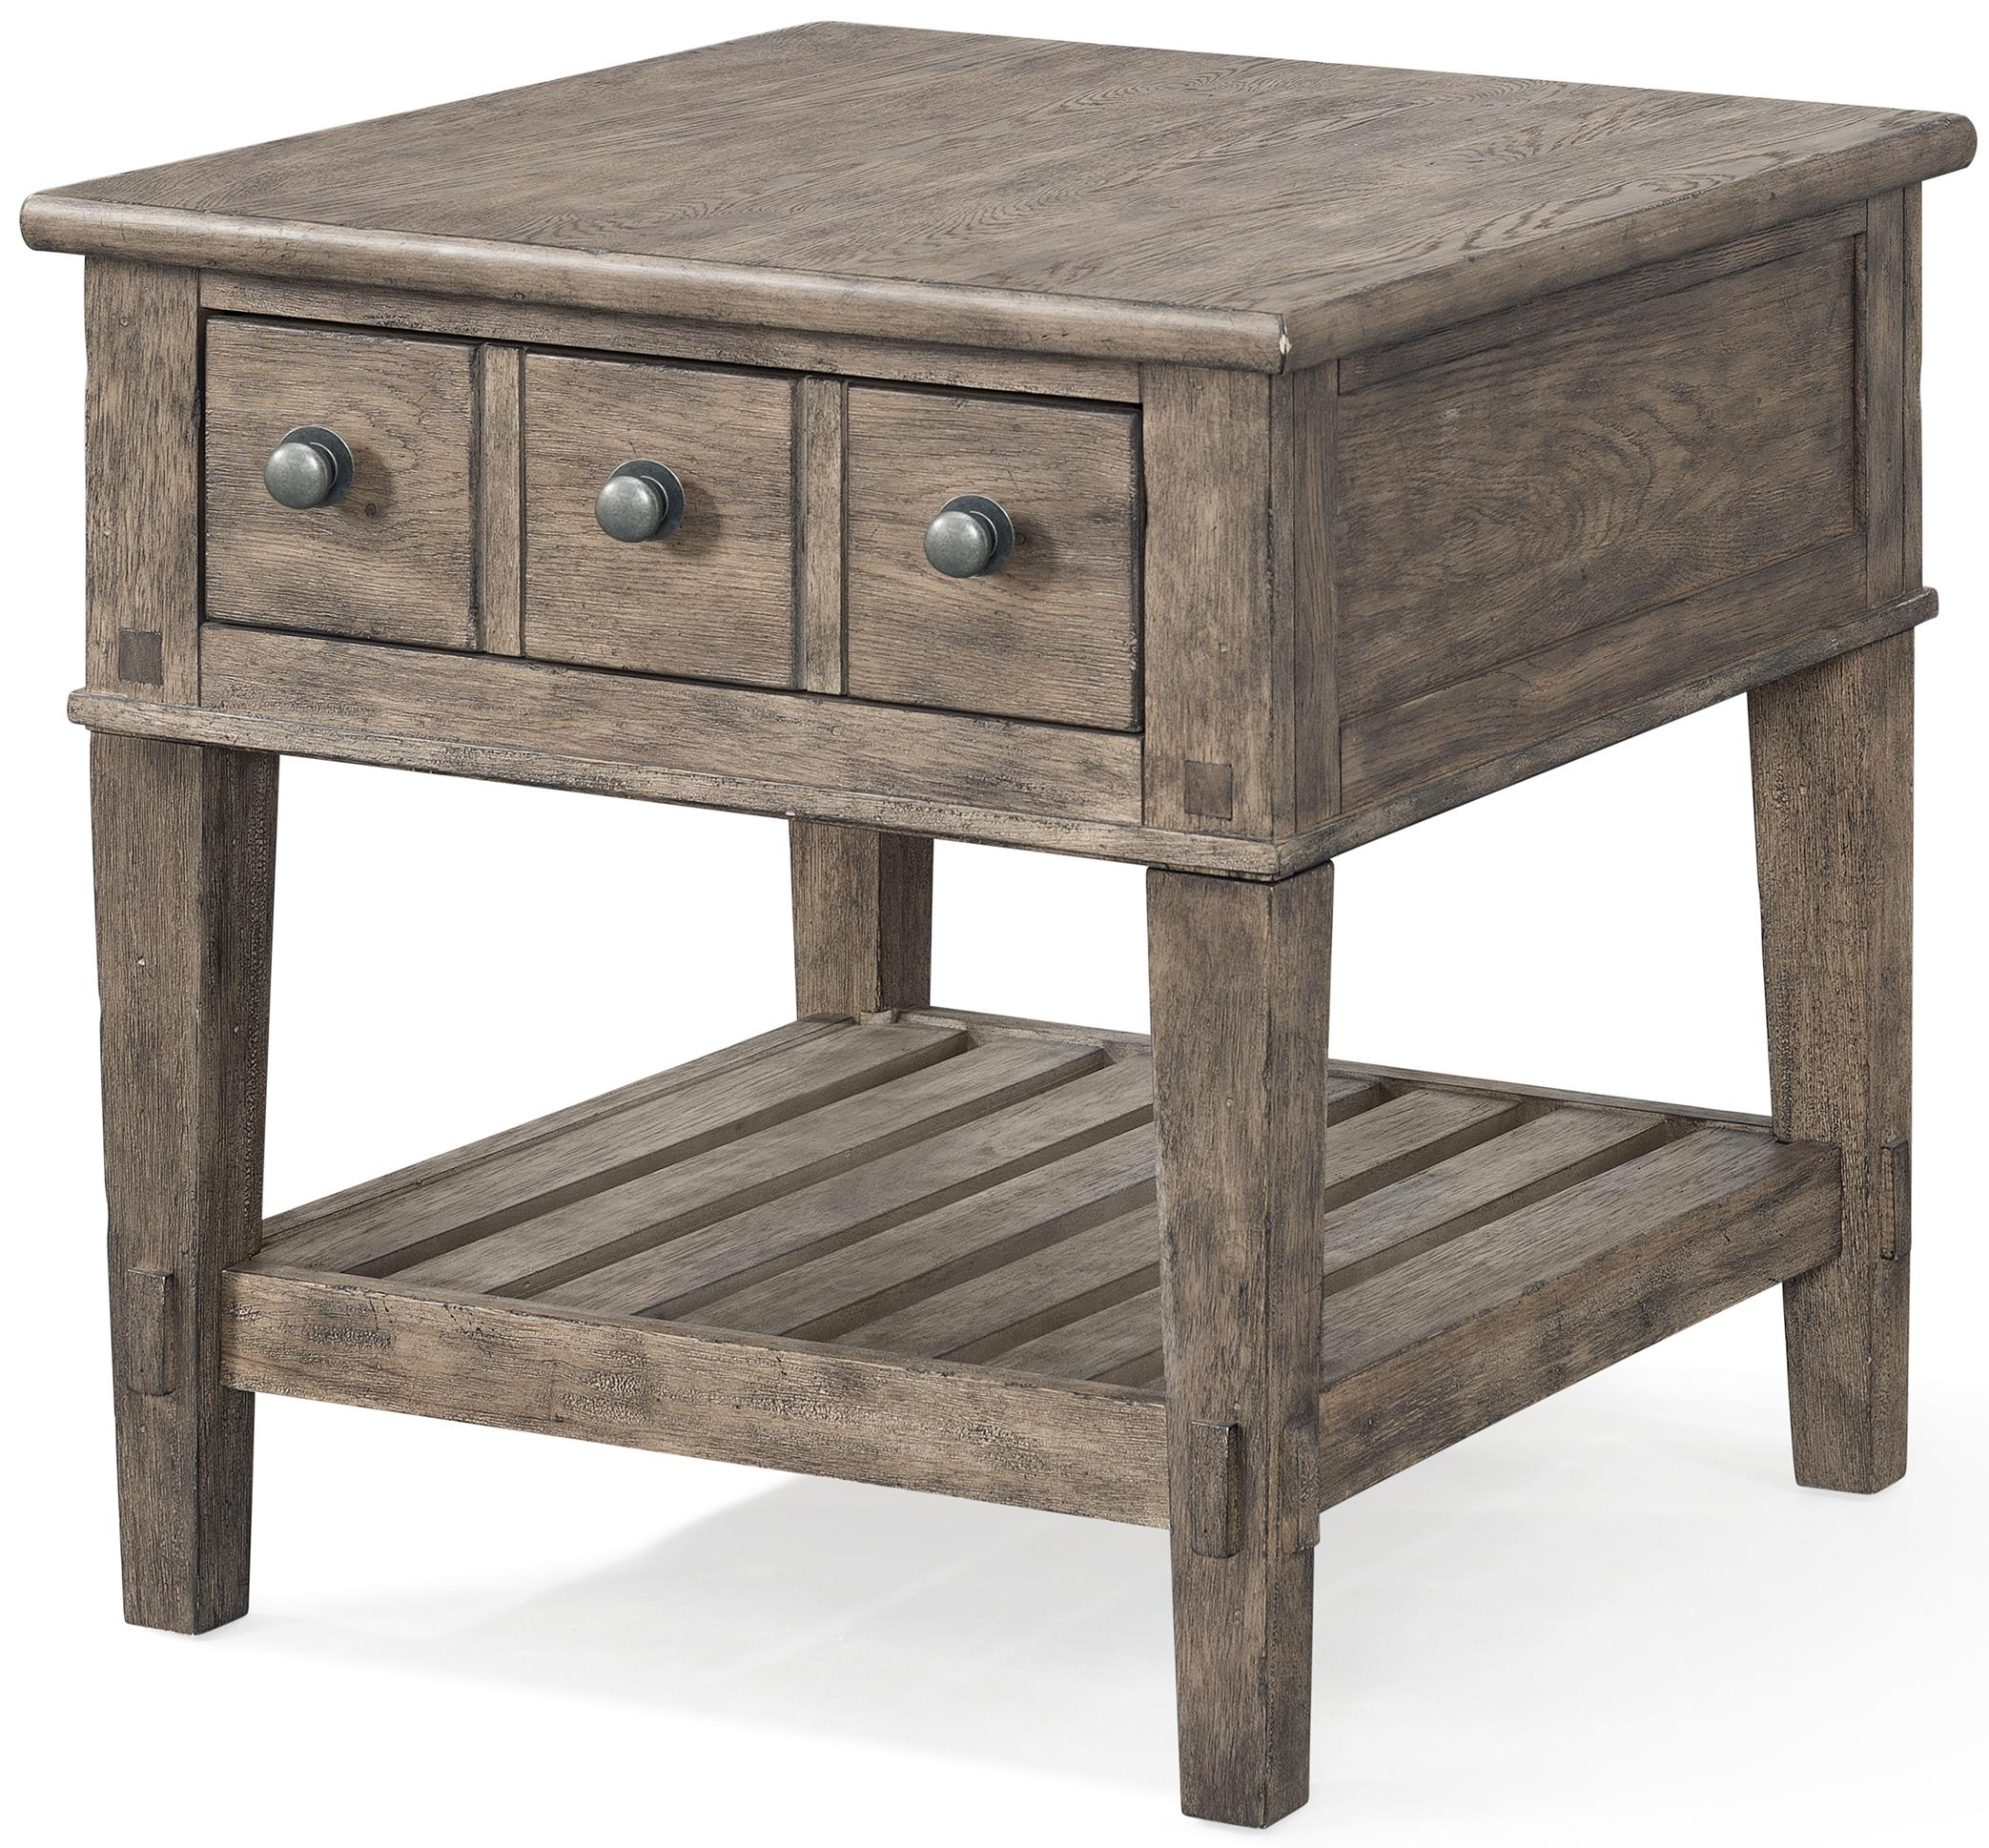 Carolina Preserves by Klaussner Riverbank End Table - Item Number: 451-809 ETBL